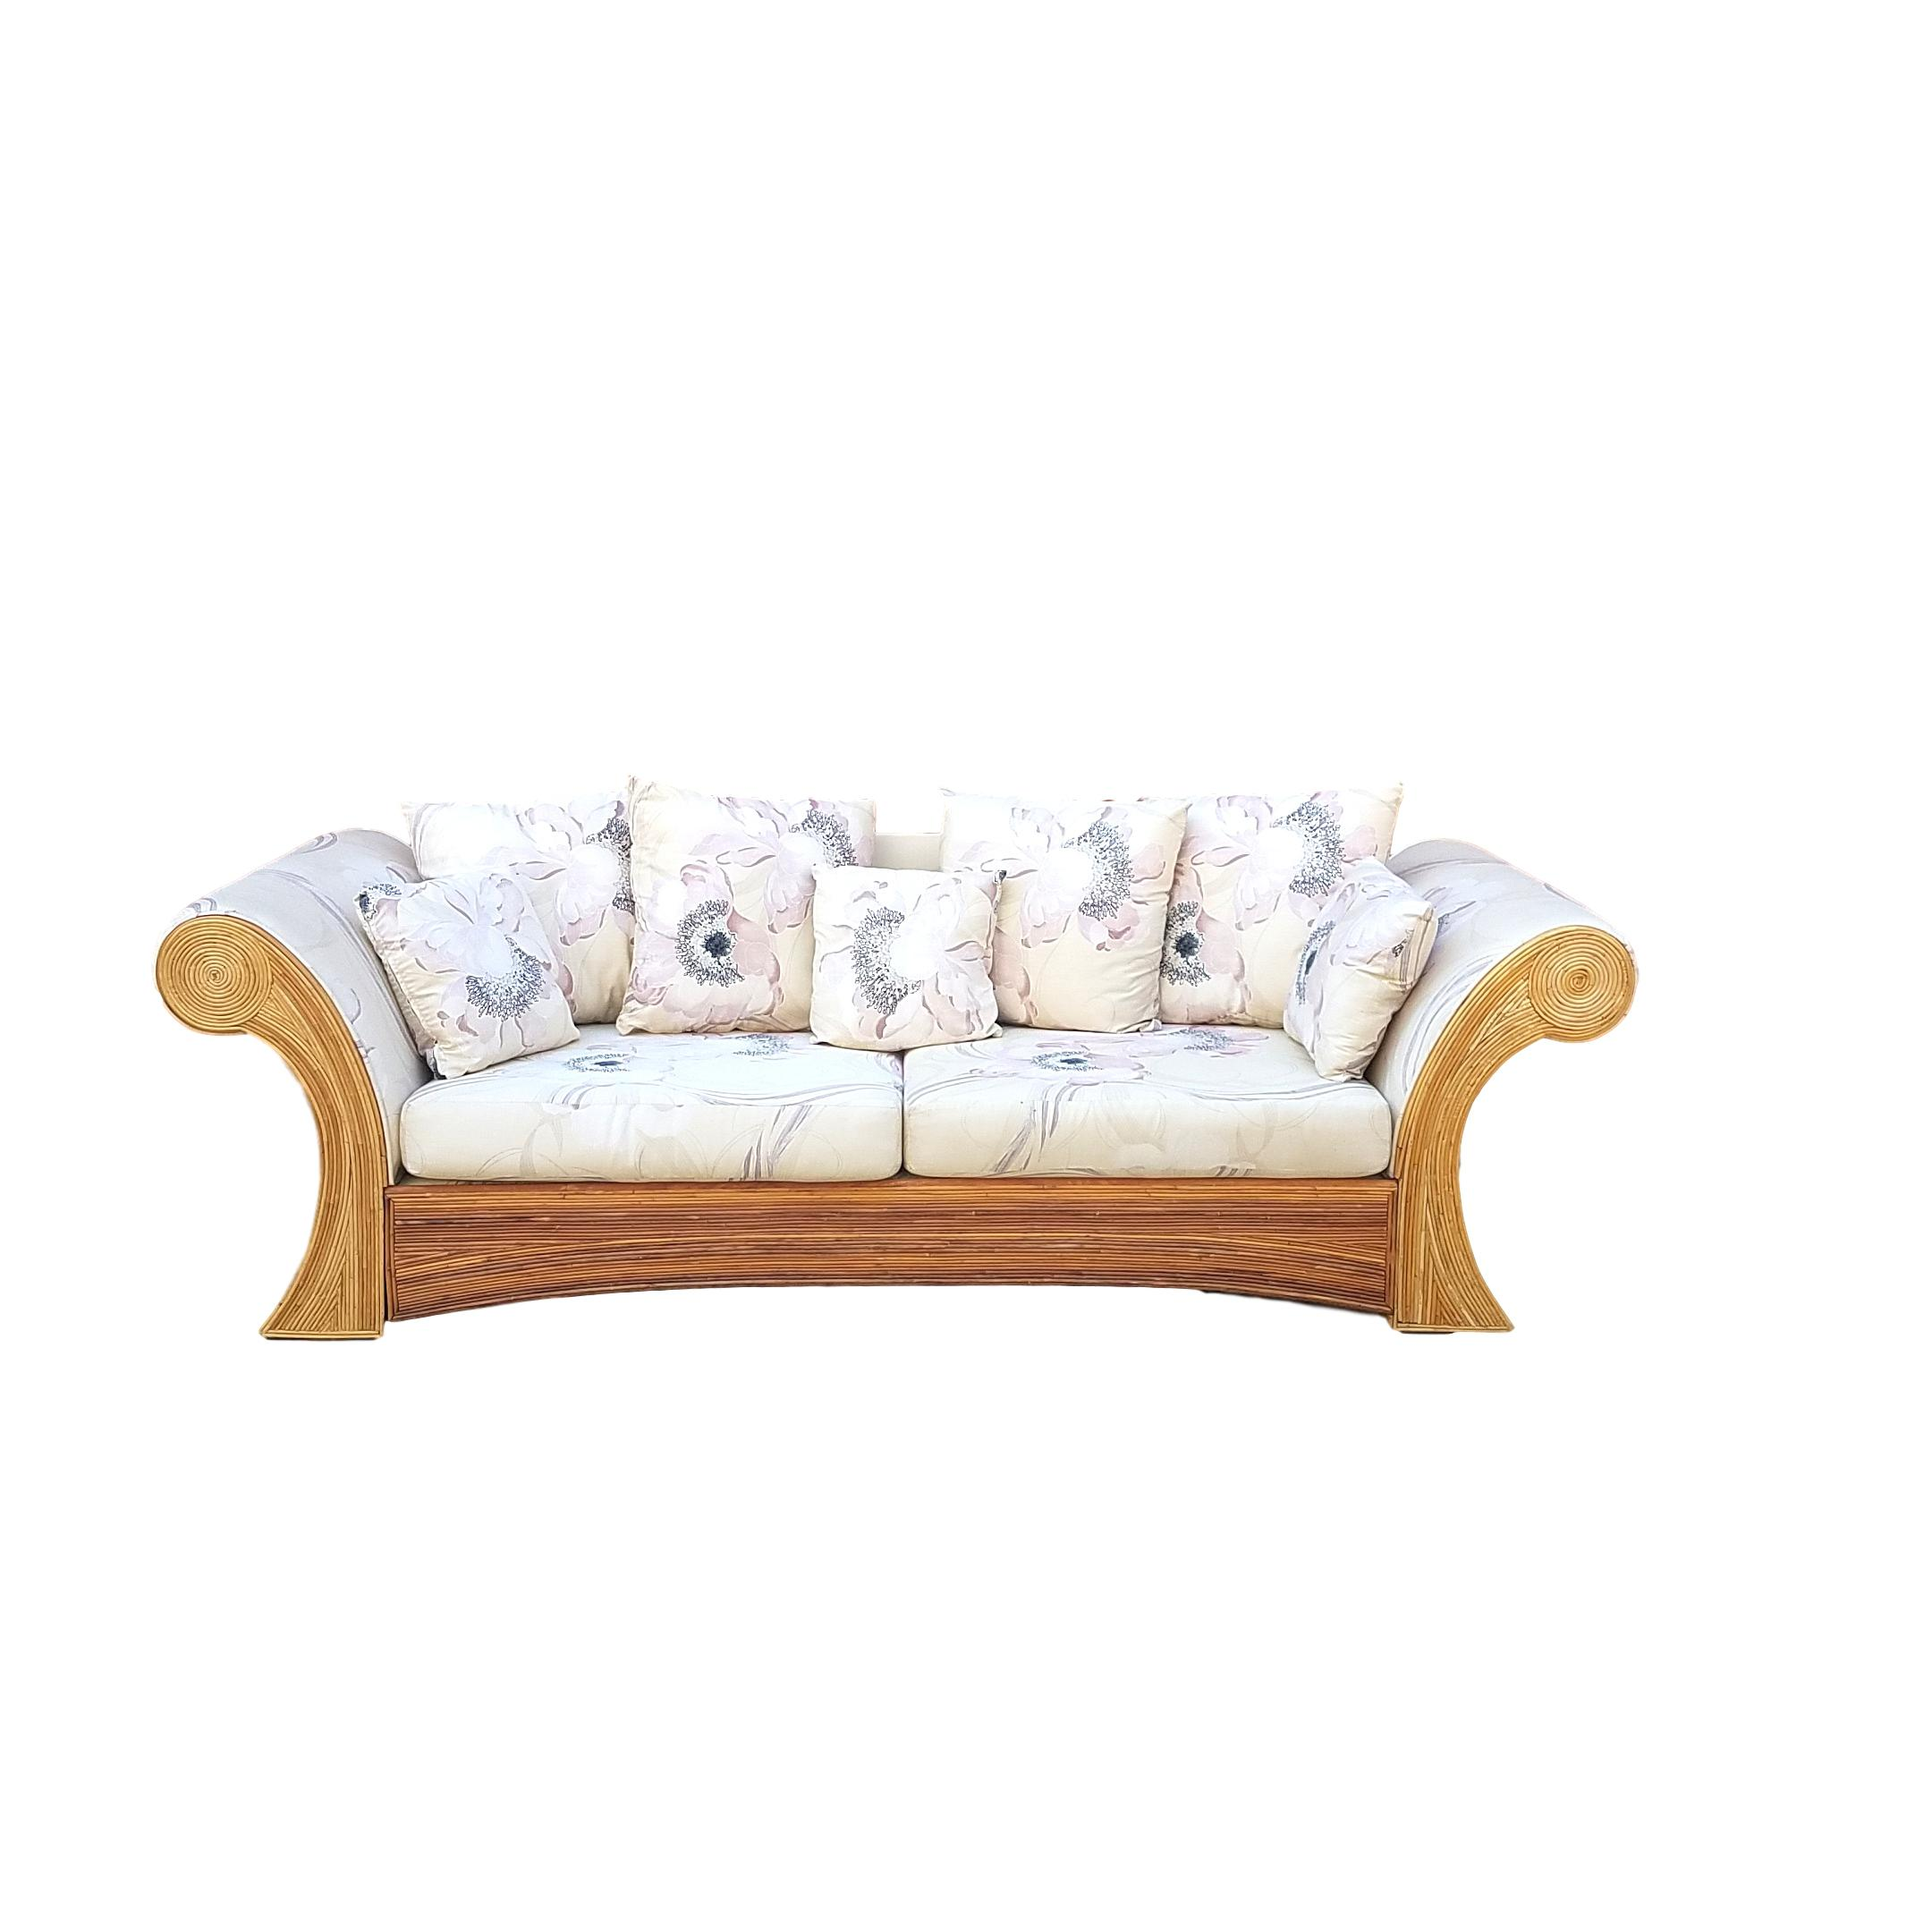 Adrian Pearsall Comfort Designs Pencil Reed Sofa   Image 2 Of 10